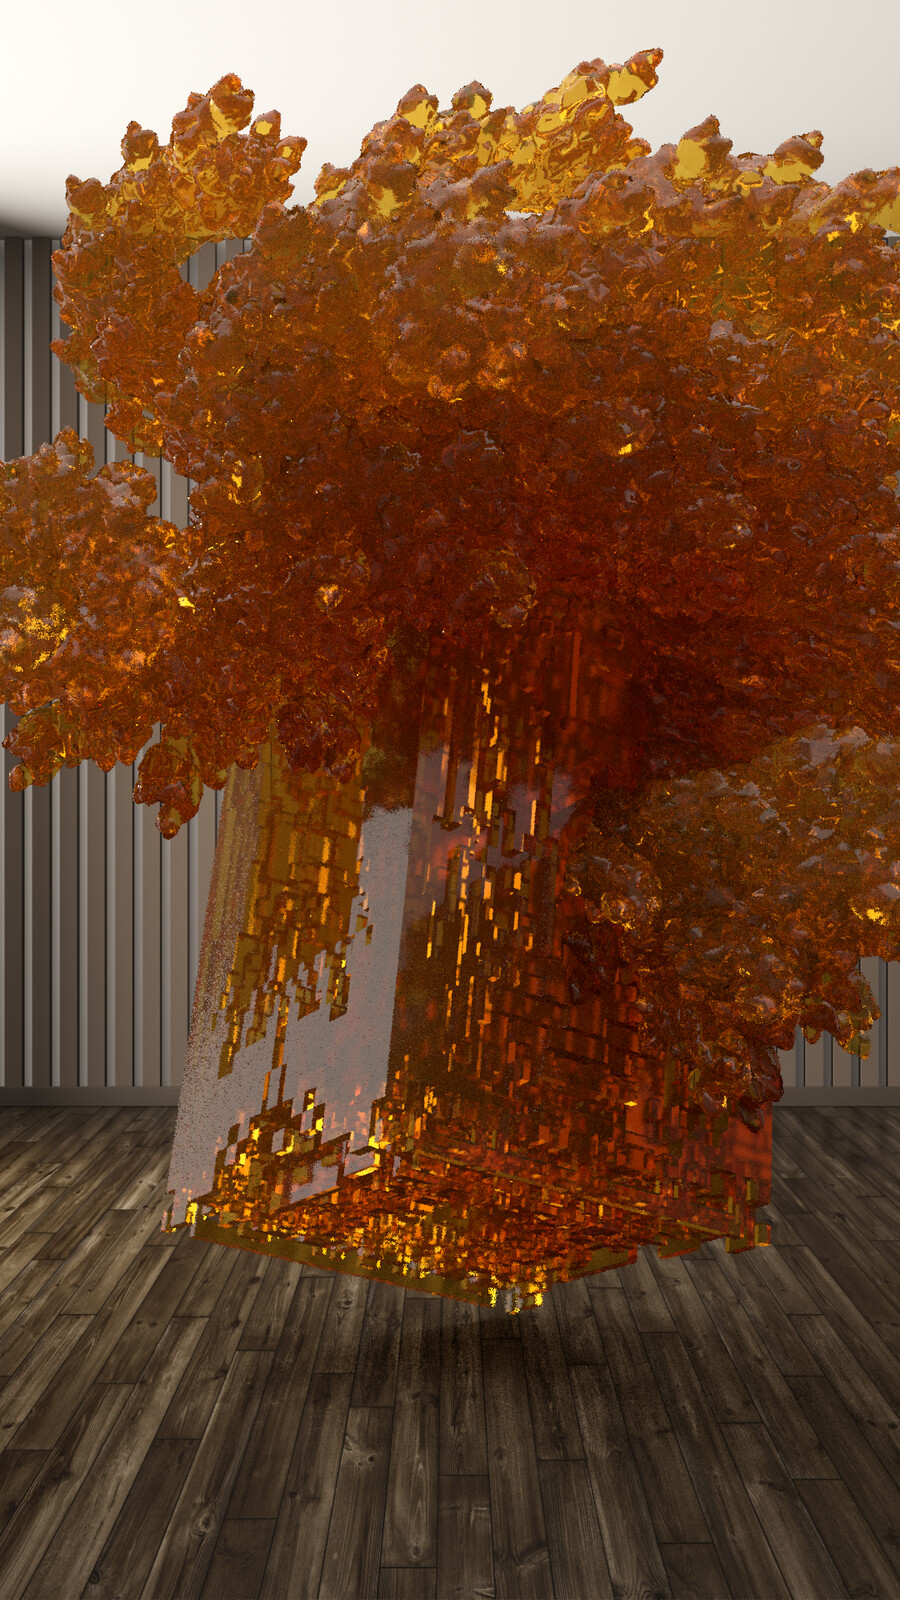 explosion (procedural sculpture)